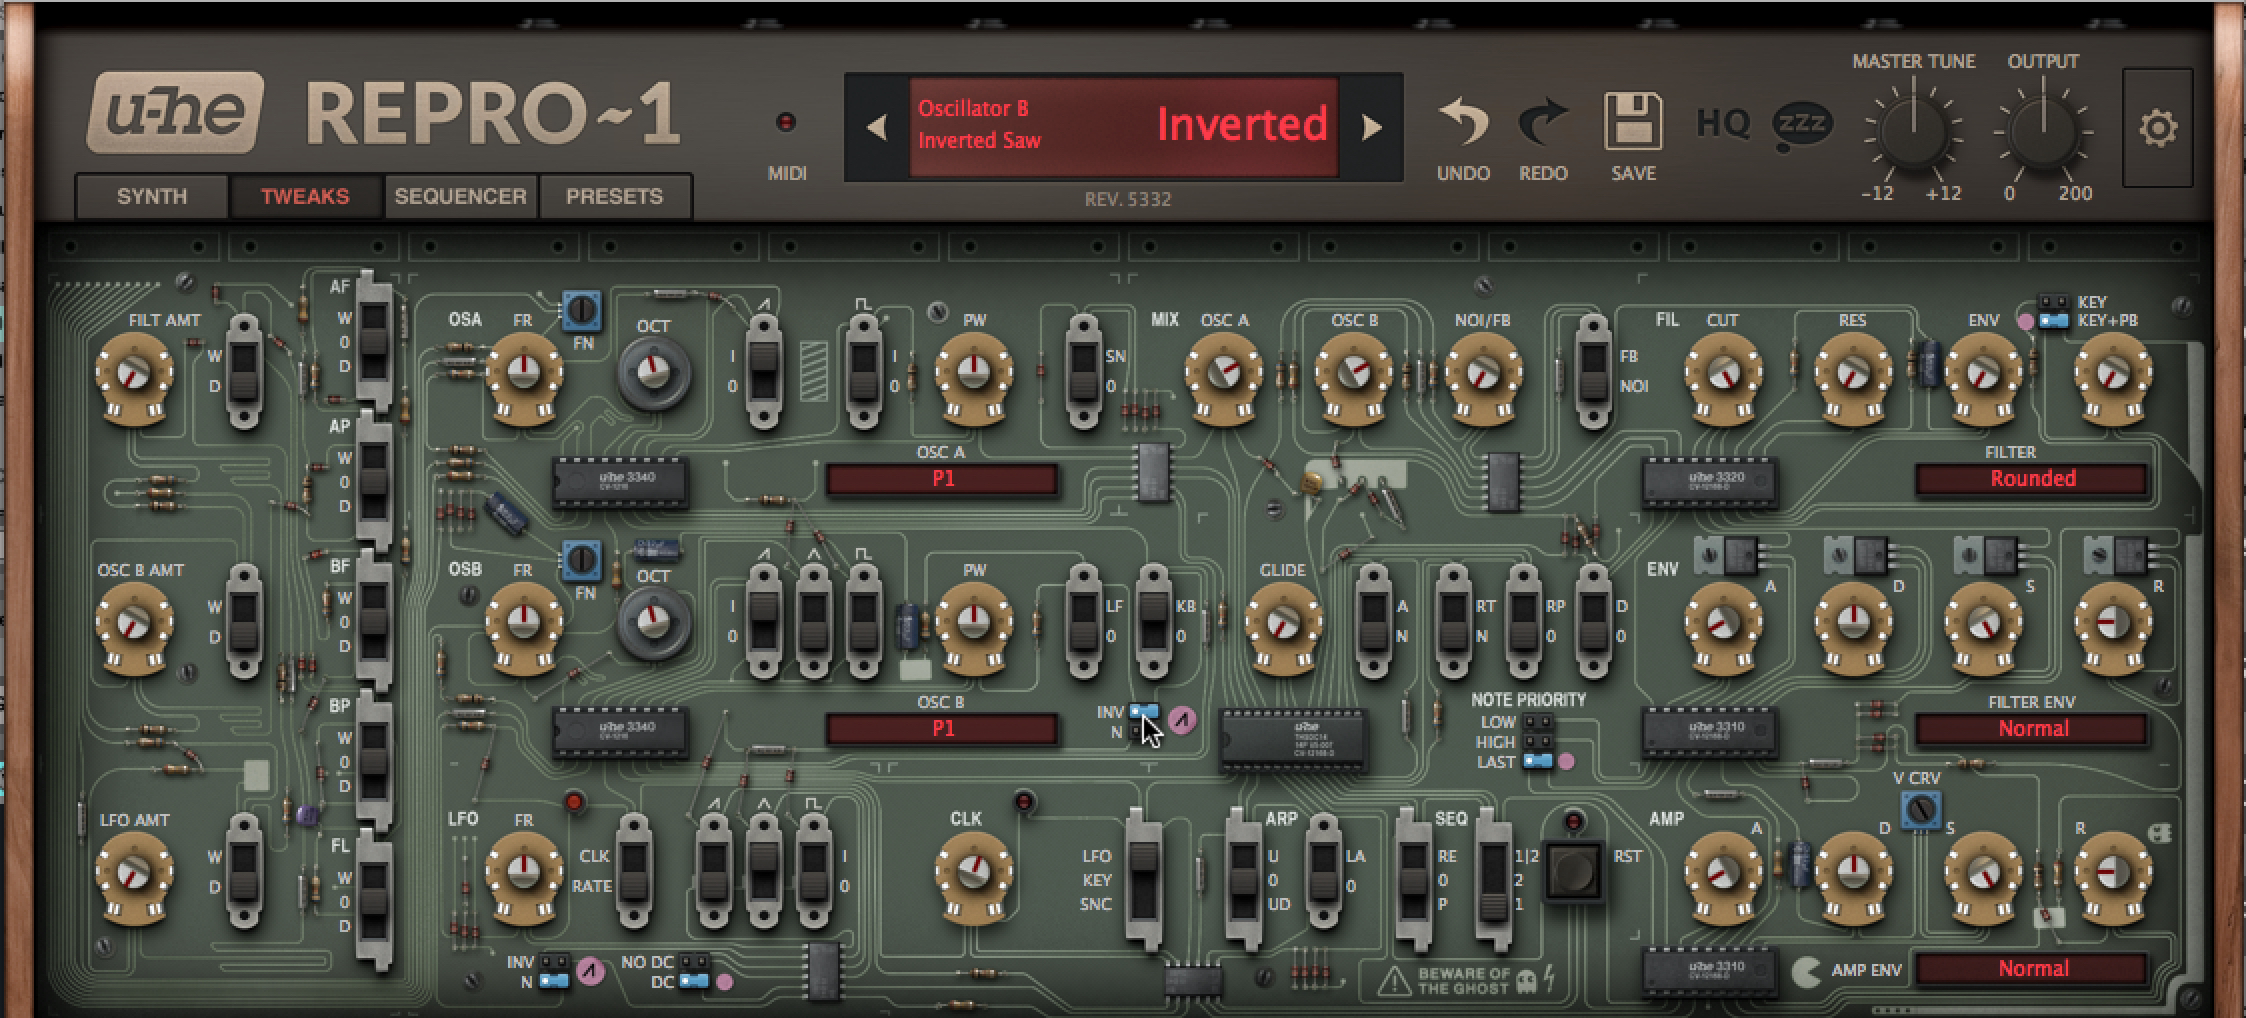 The TWEAKS mode lets you spend some time under the hood to evolve/mutate the original sound